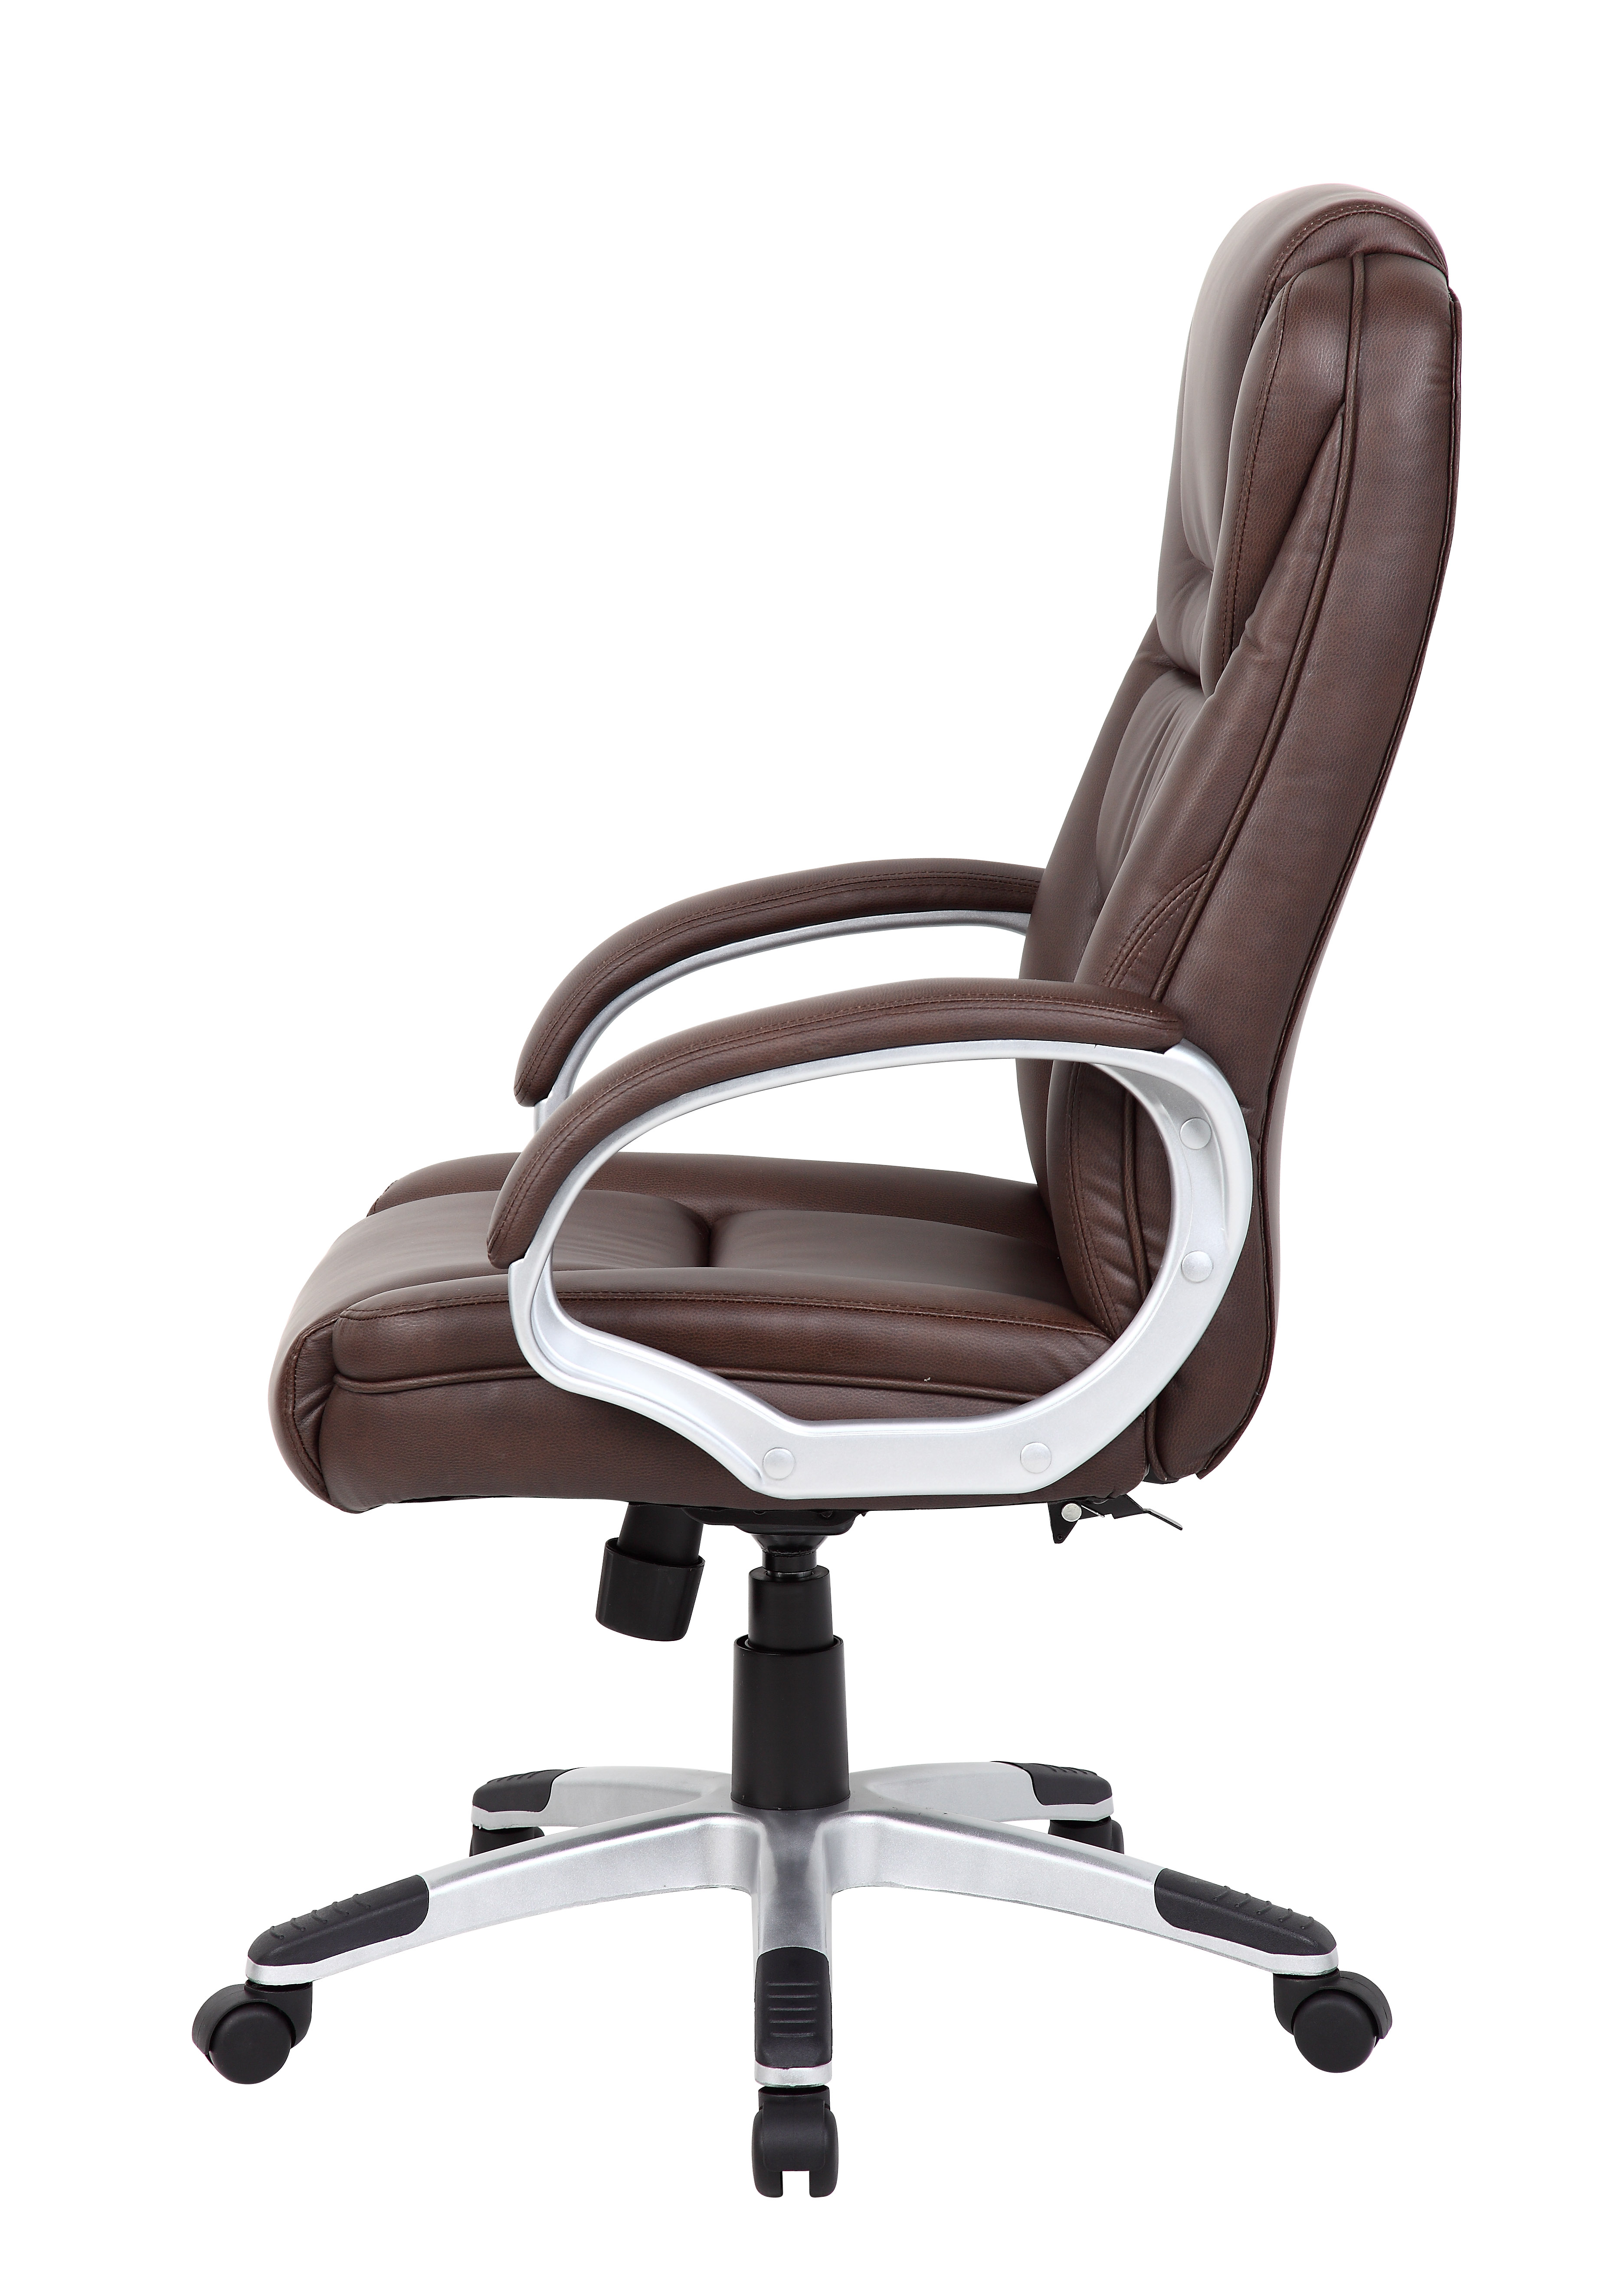 boss ntr executive leatherplus chair horseshoe rocking brown  bosschair